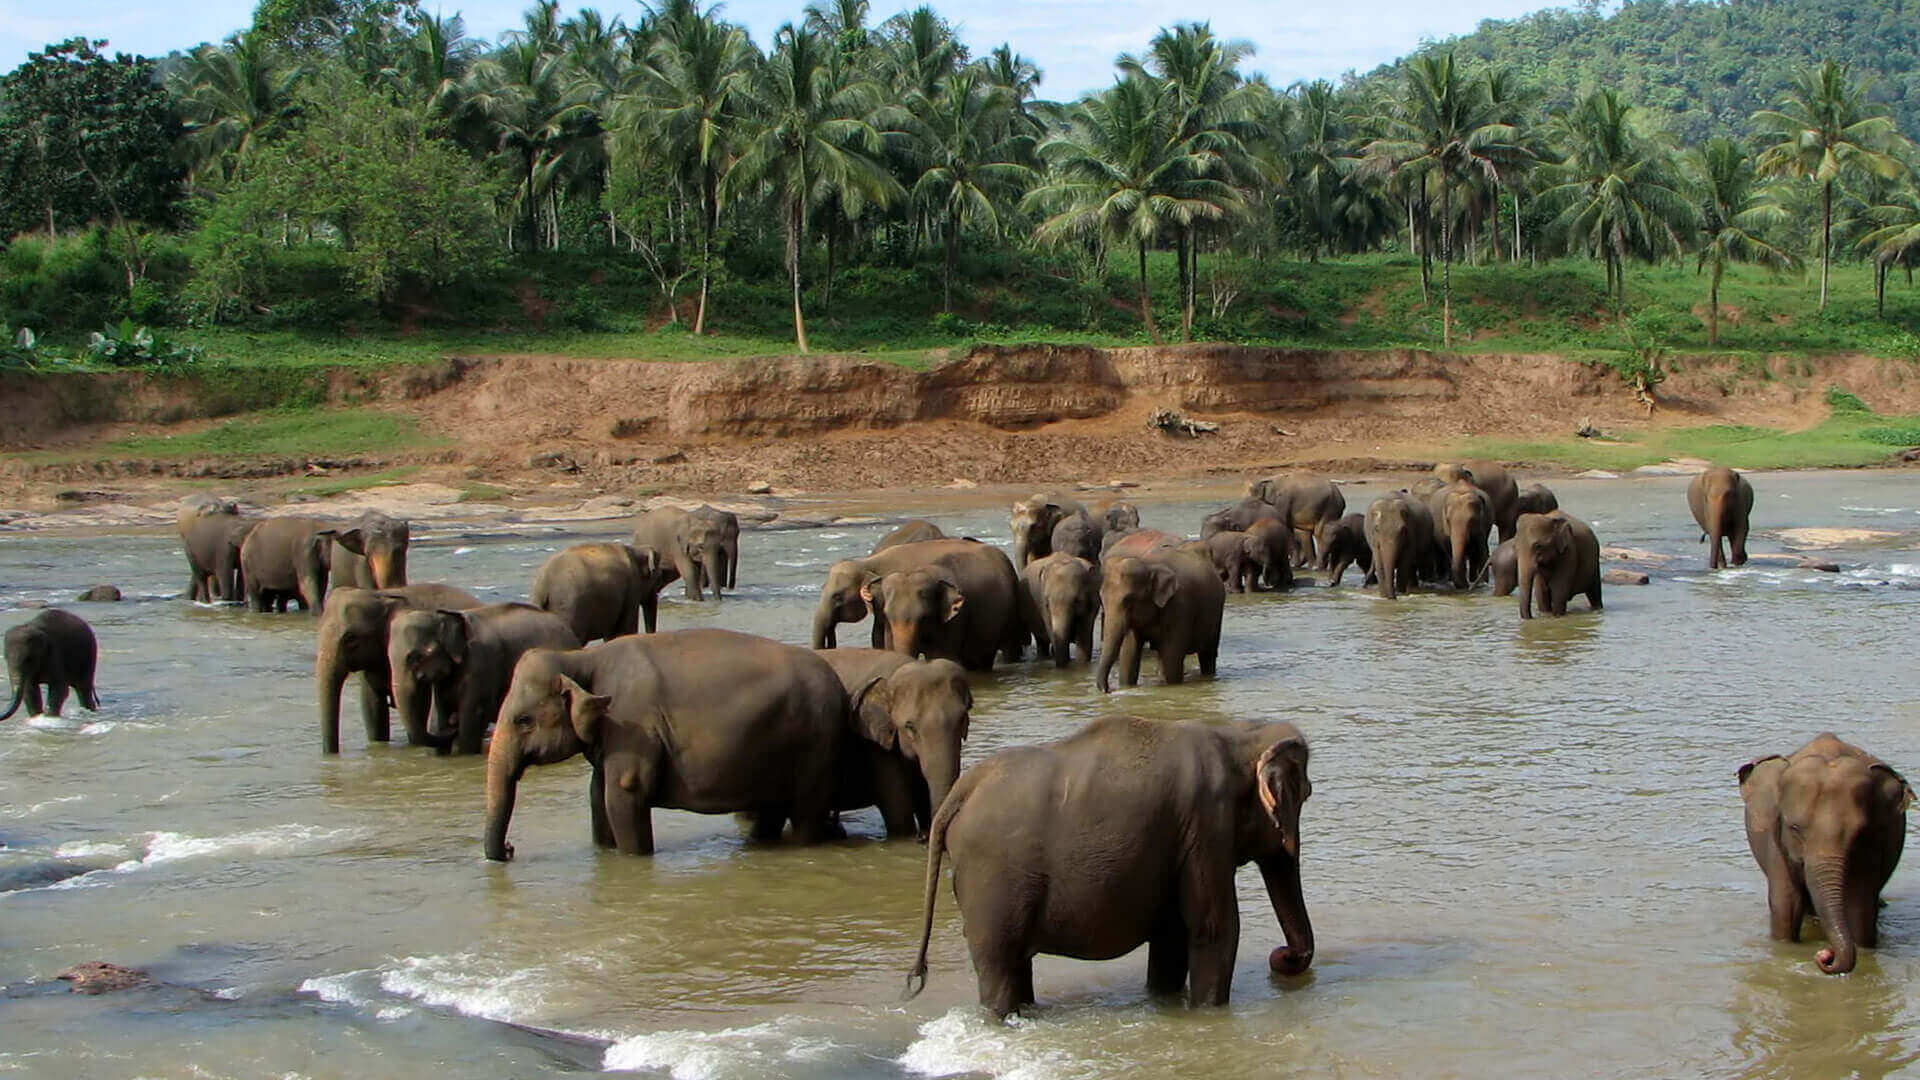 The Golden Crown Hotel - Pinnawala Elephant Orphanage